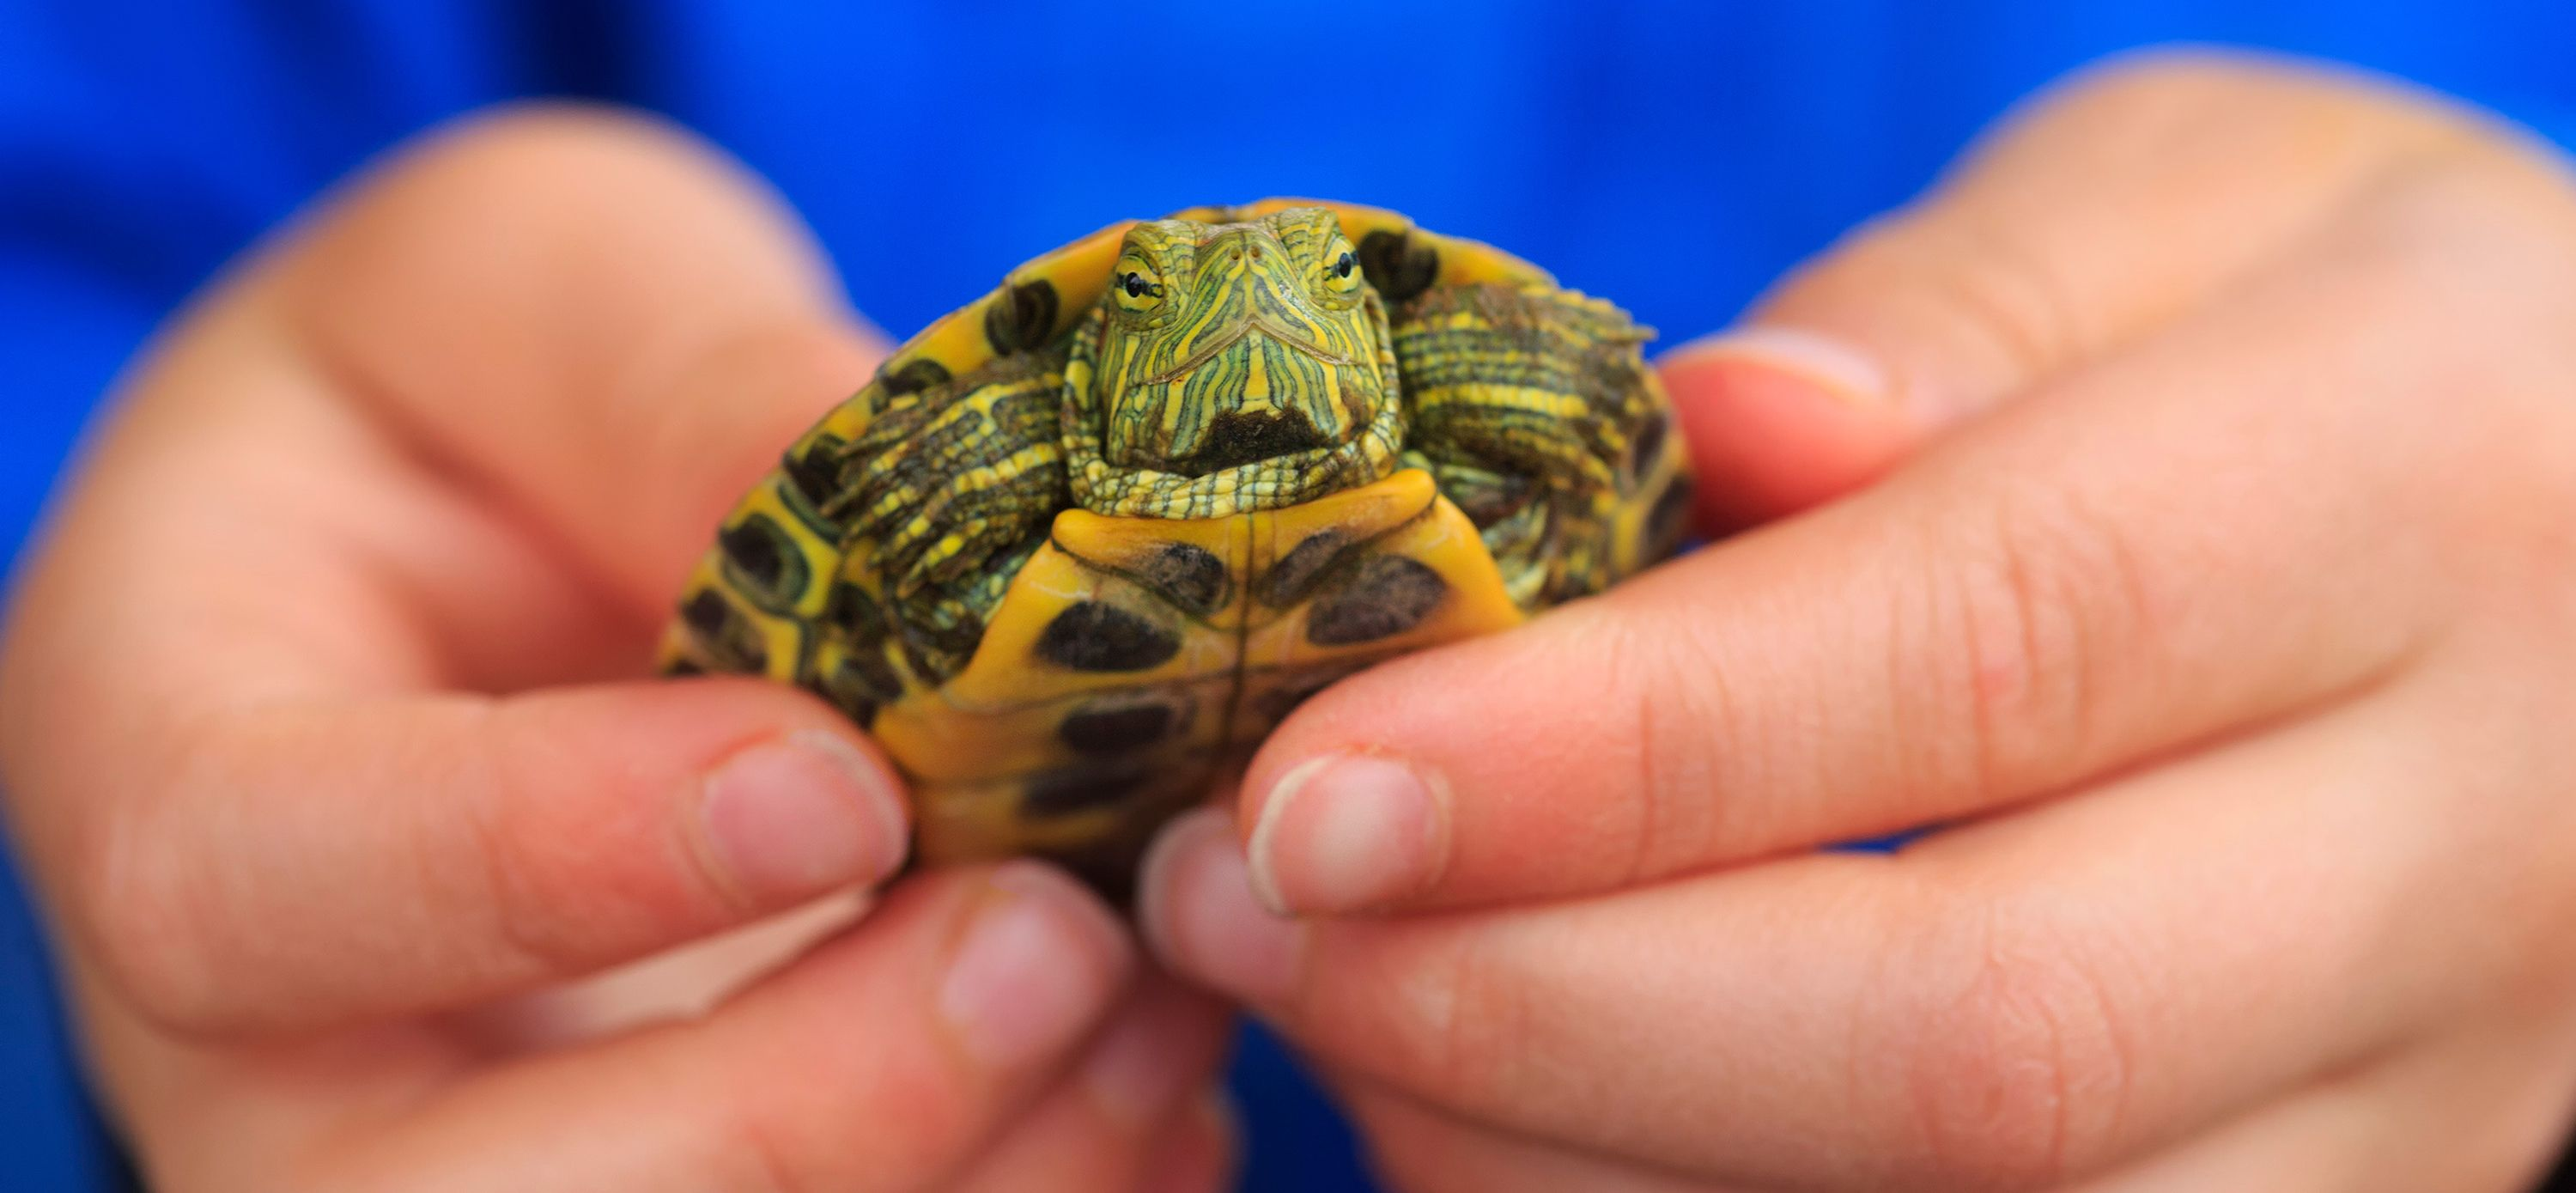 Pet Reptiles And Salmonella Risk Why You Shouldn T Own A Pet Turtle